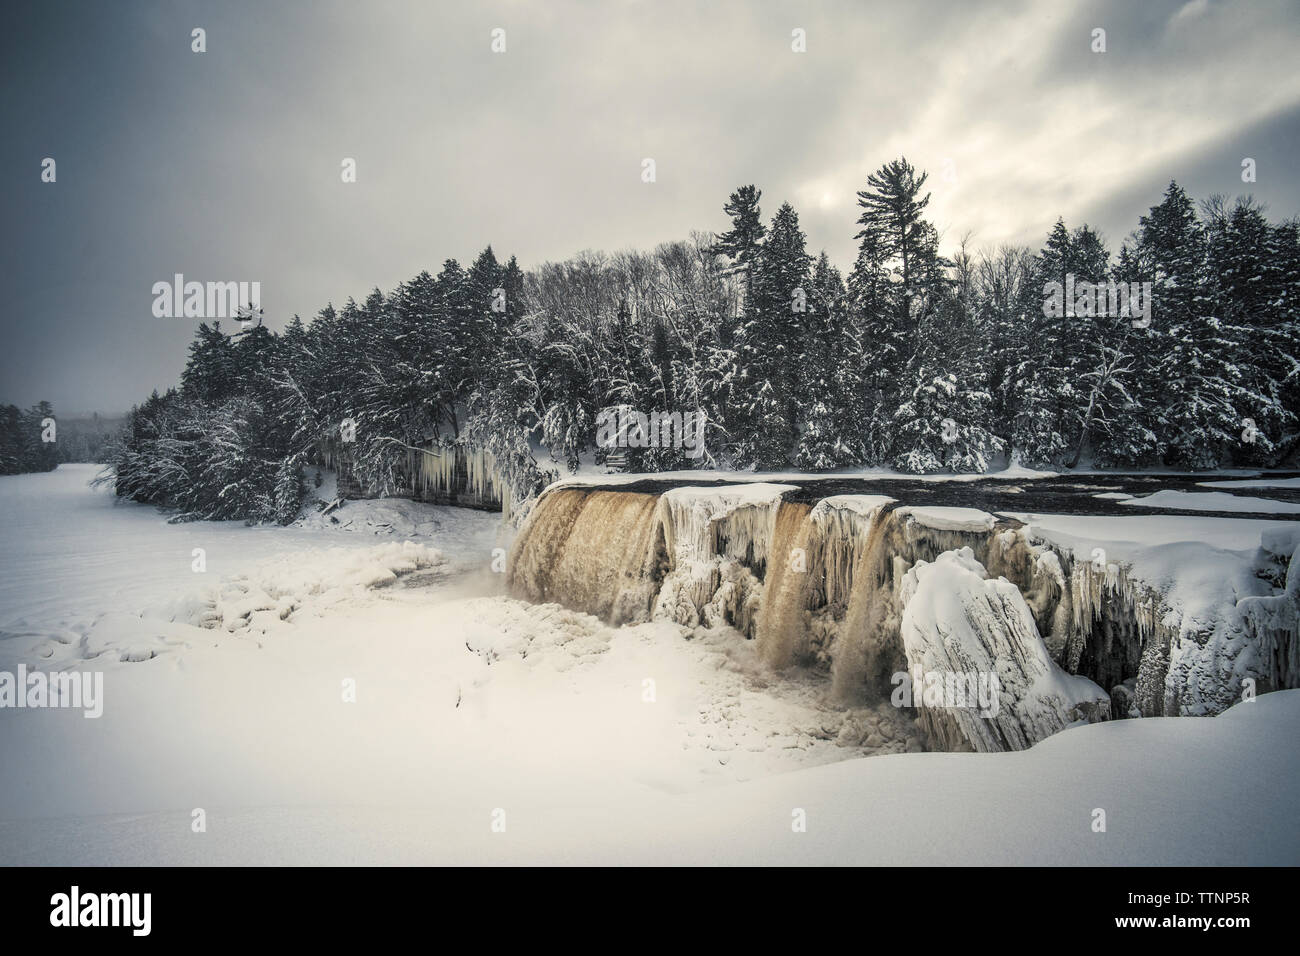 Scenic view of waterfall against cloudy sky at forest during winter - Stock Image